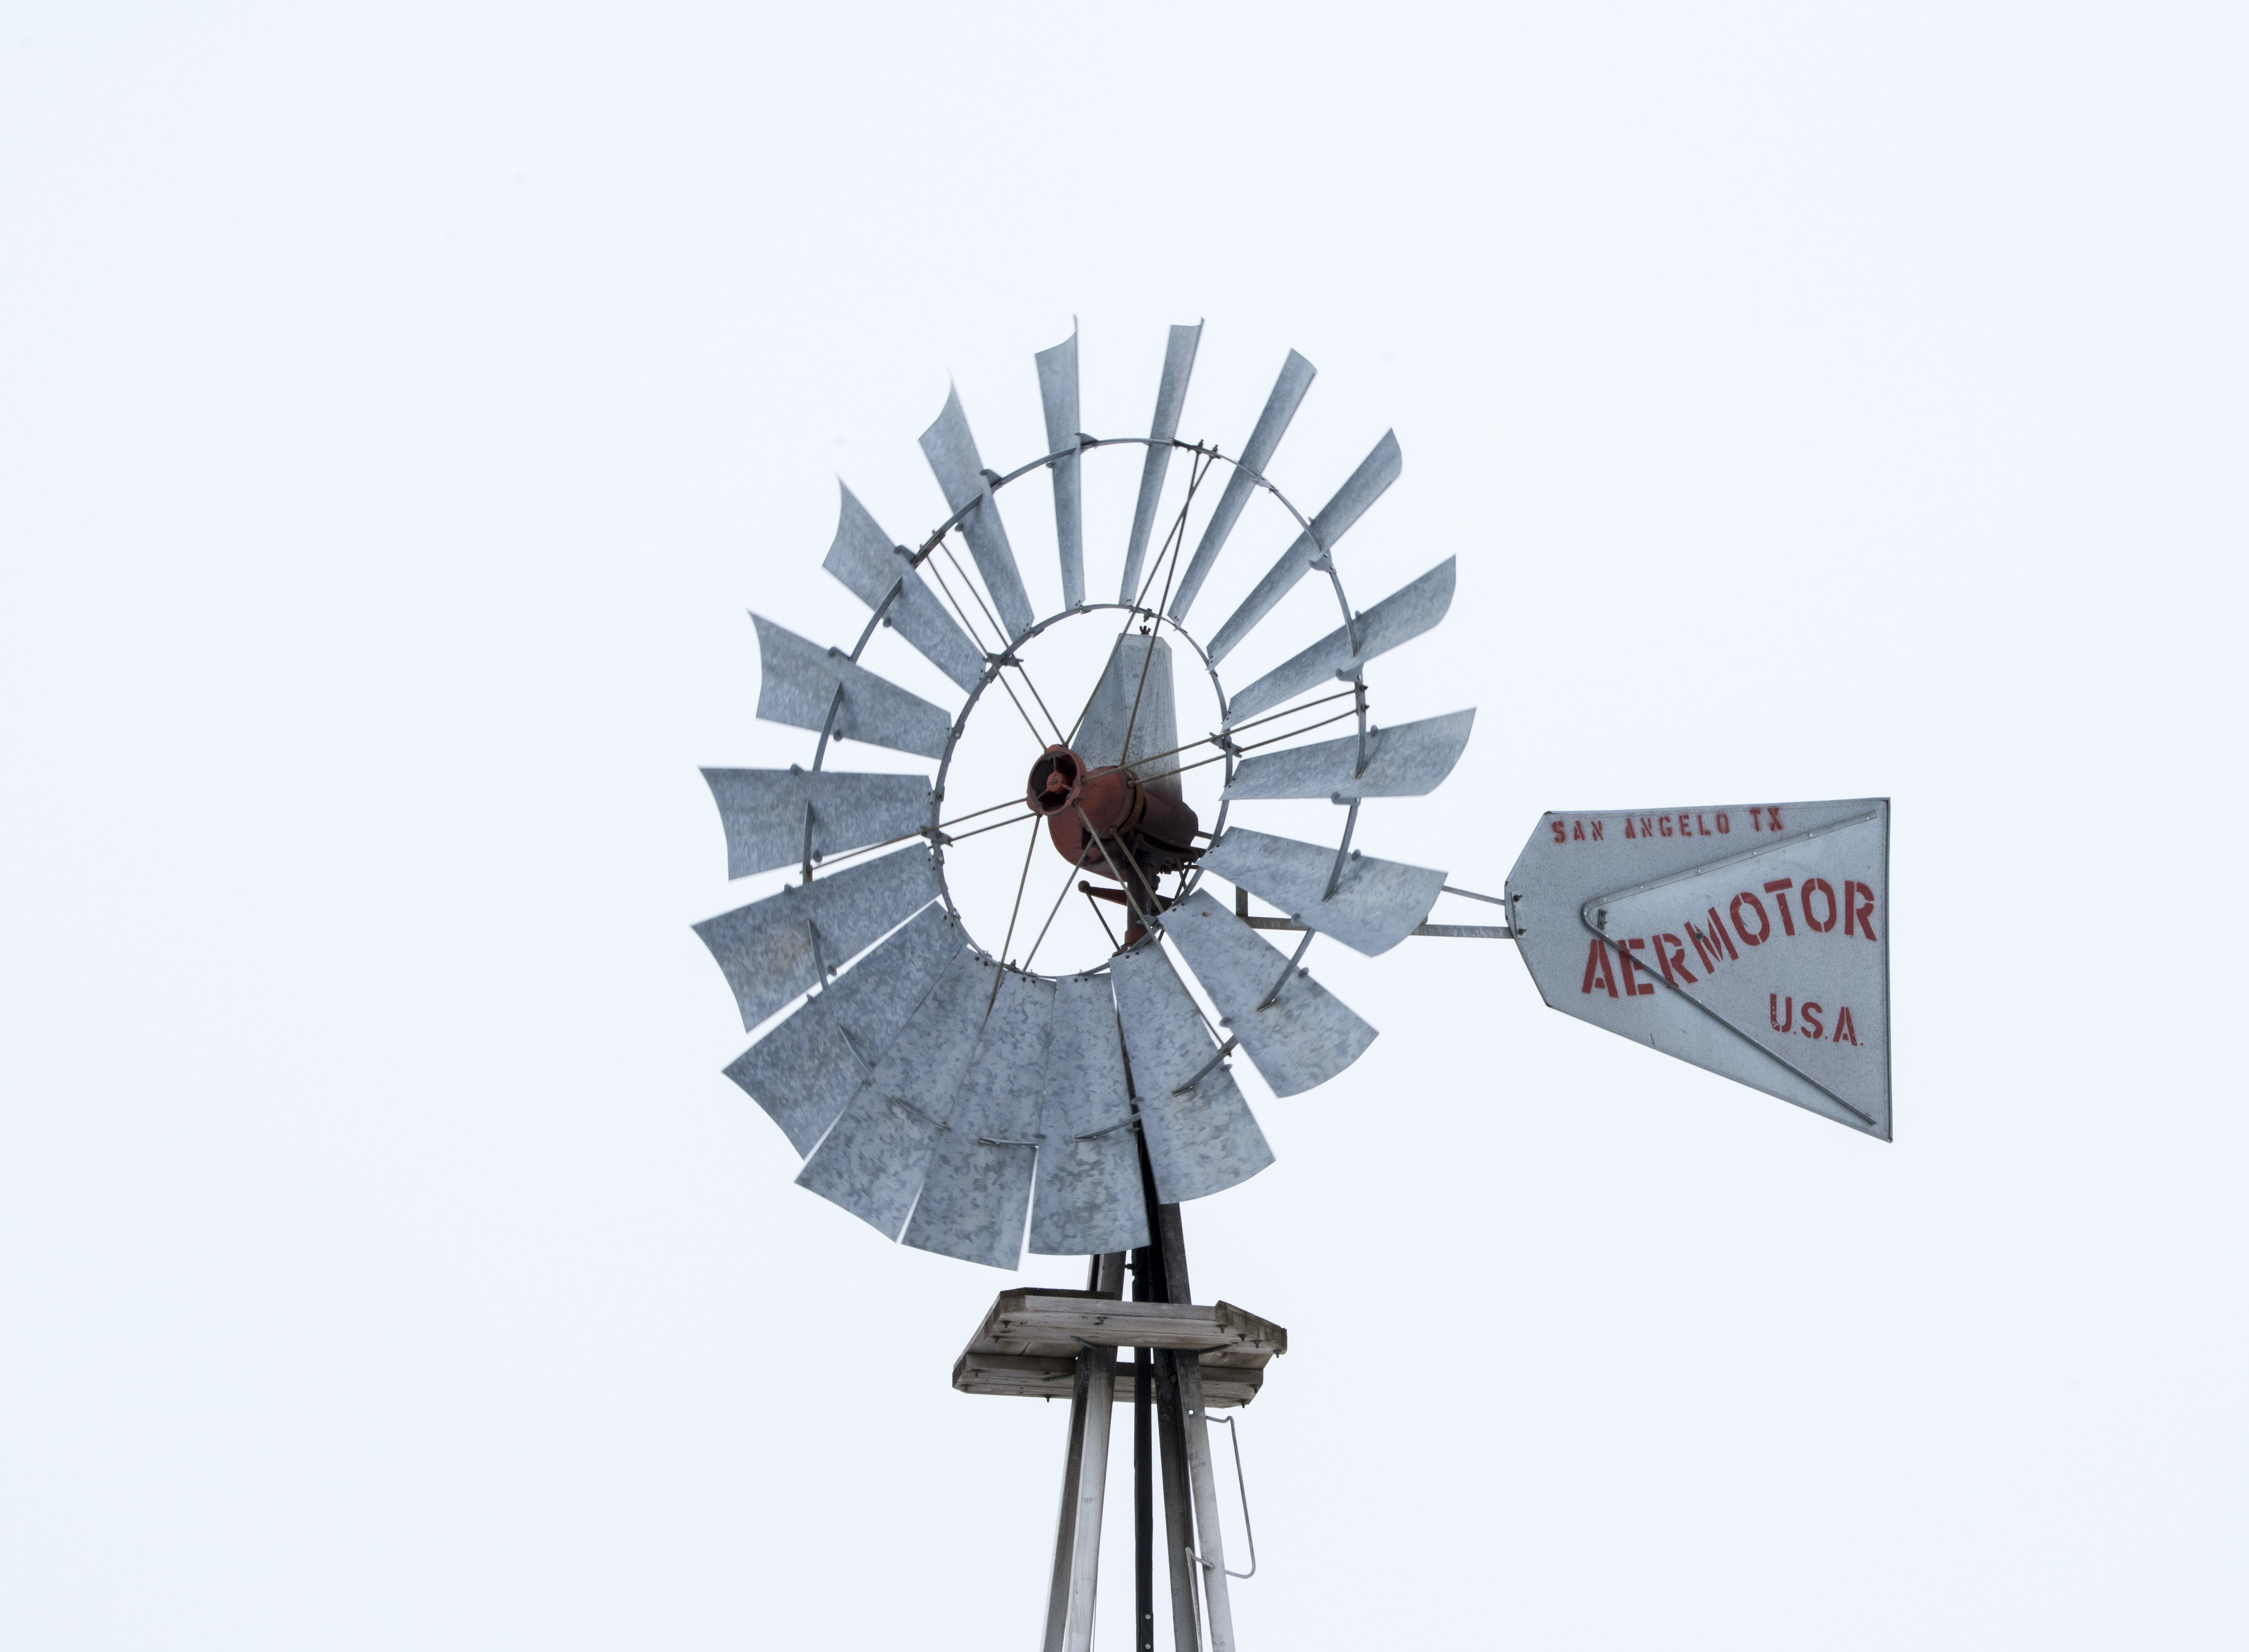 low angle photography of gray windmill